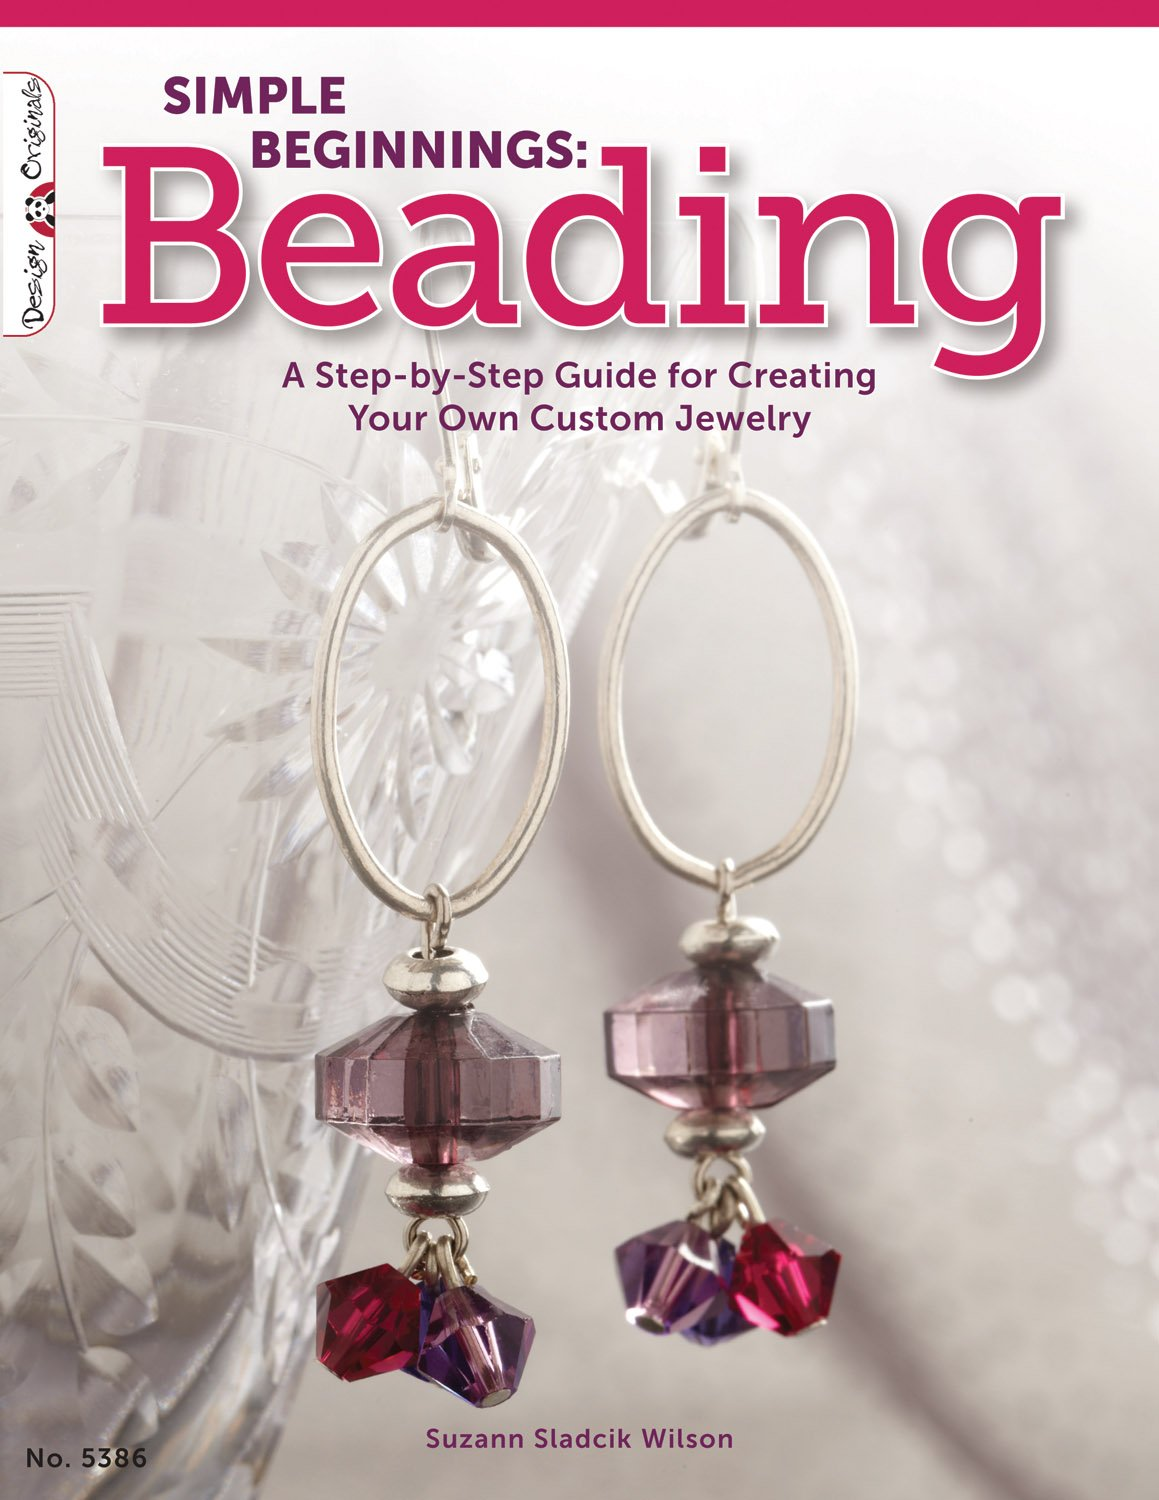 Amazon.com: Simple Beginnings: Beading: A Step-by-Step Guide to ...